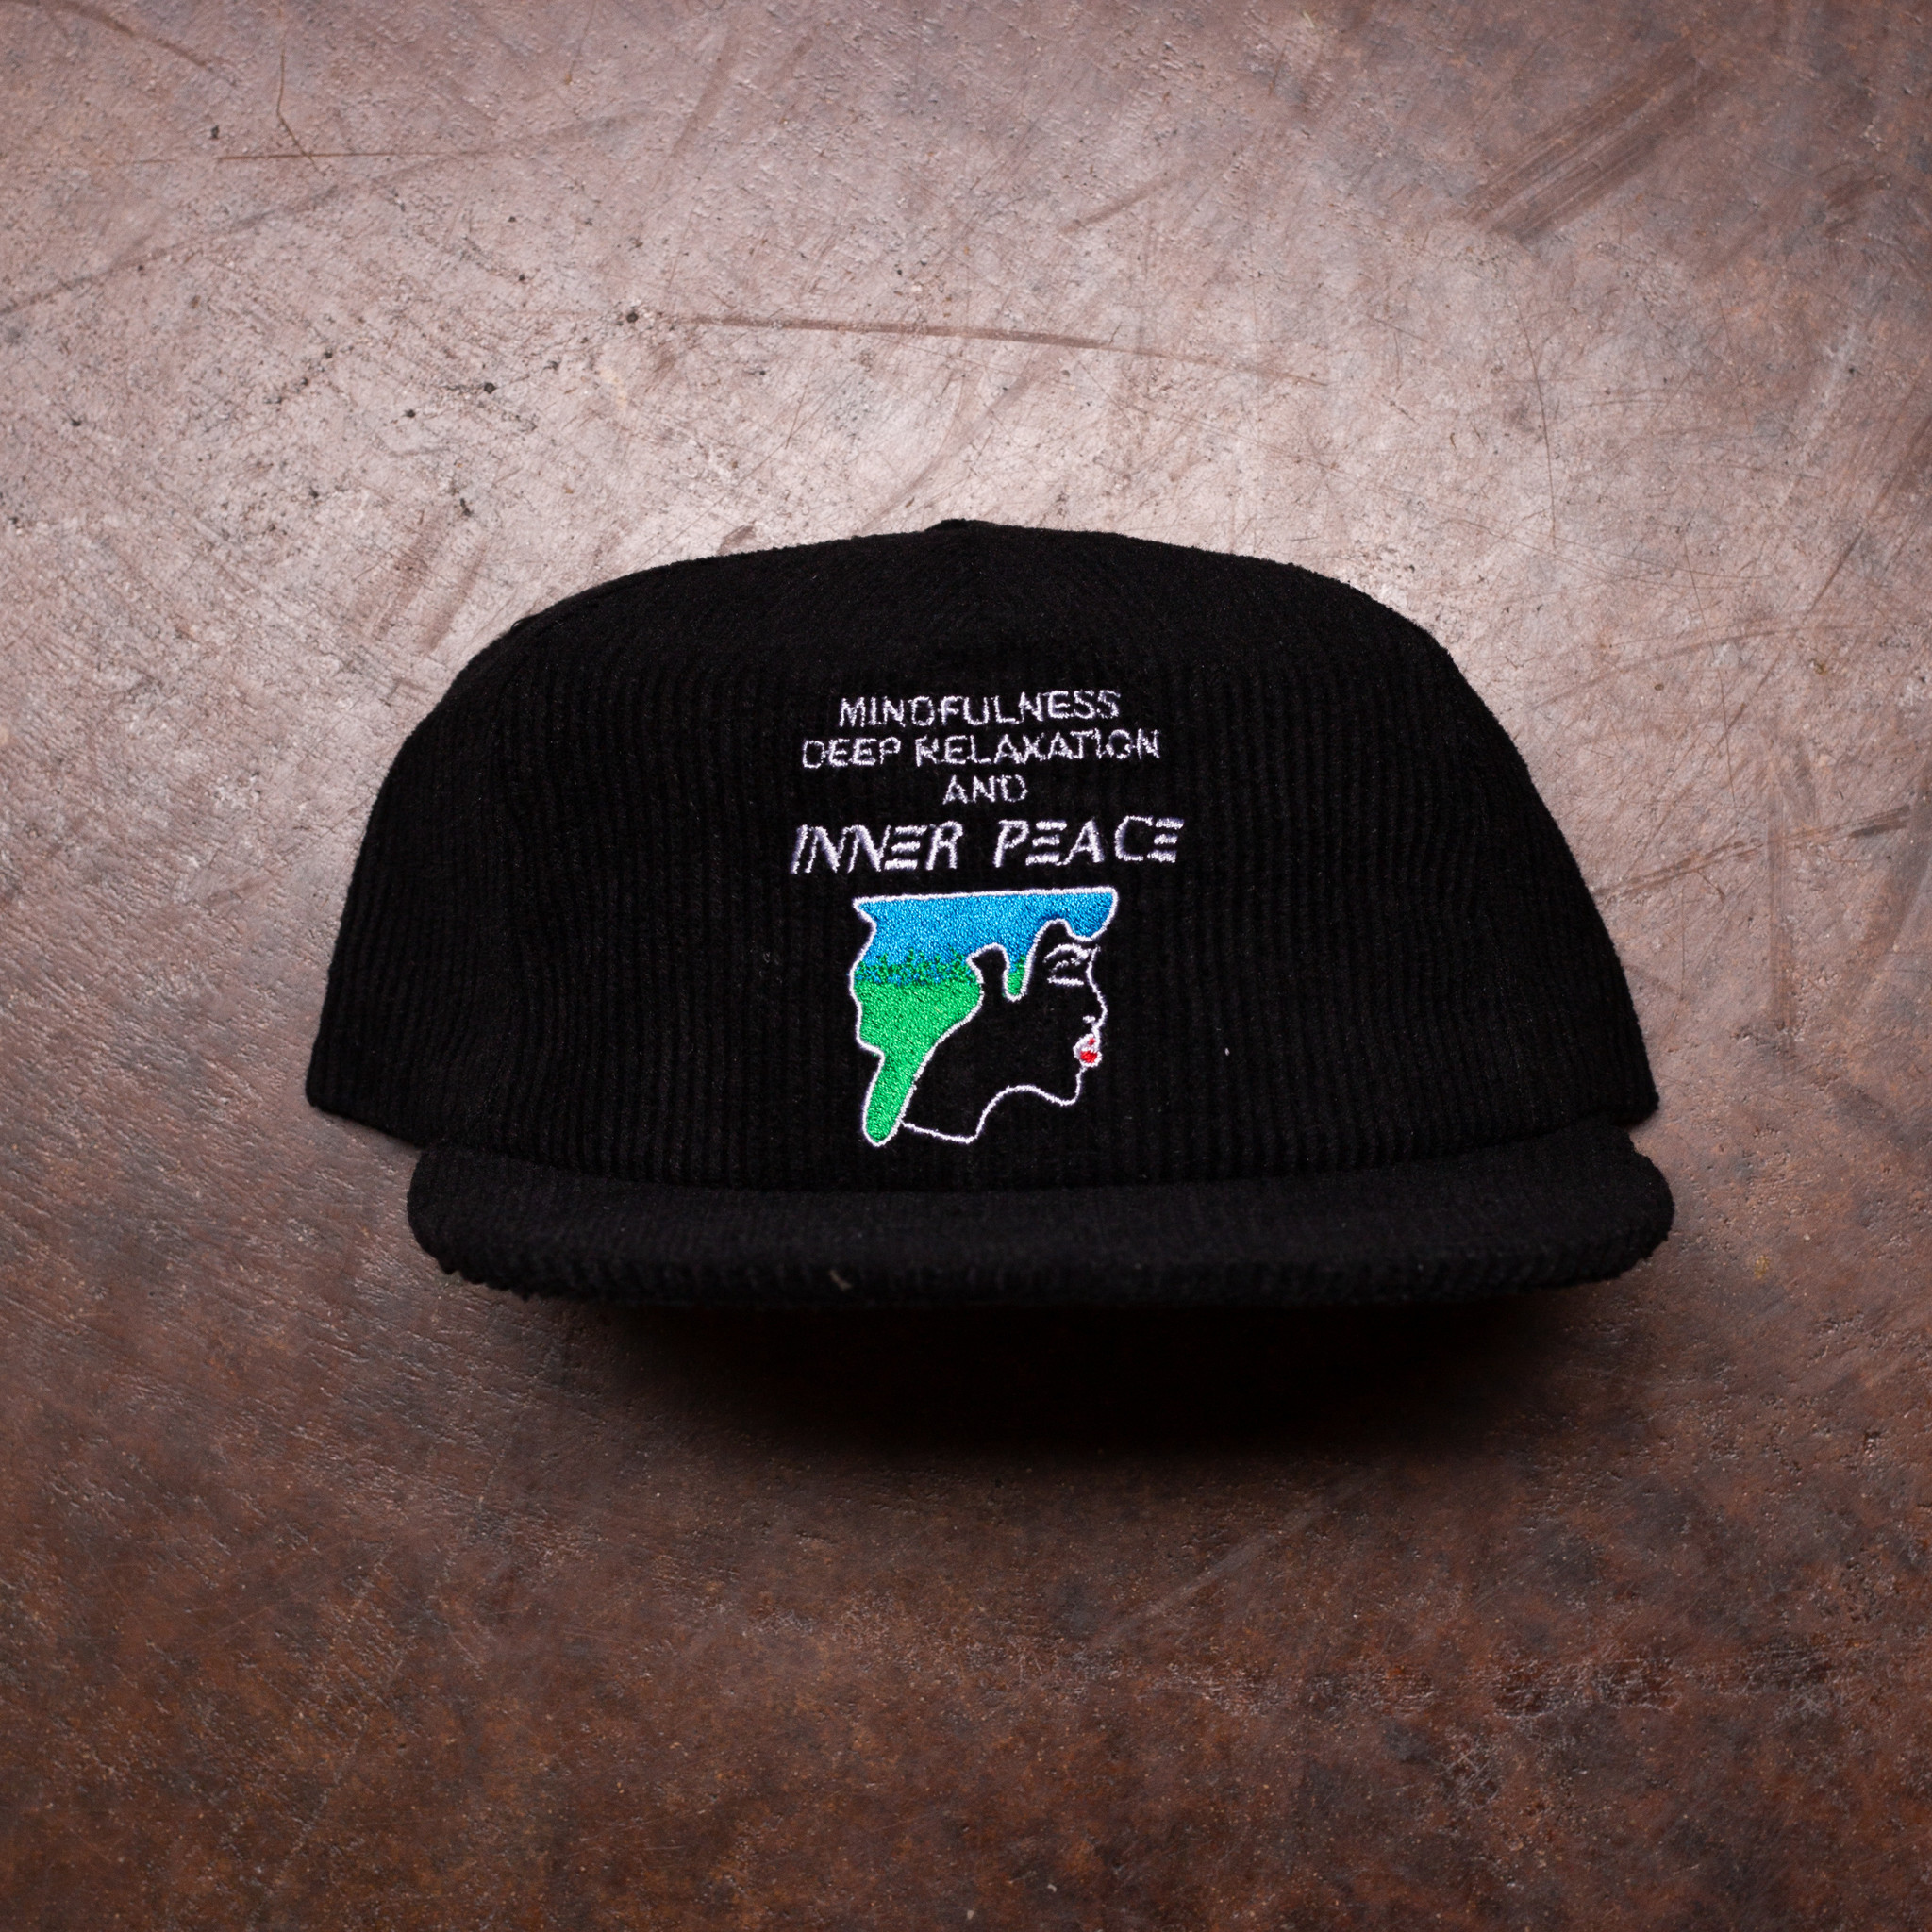 Jungles Interpeace Hat